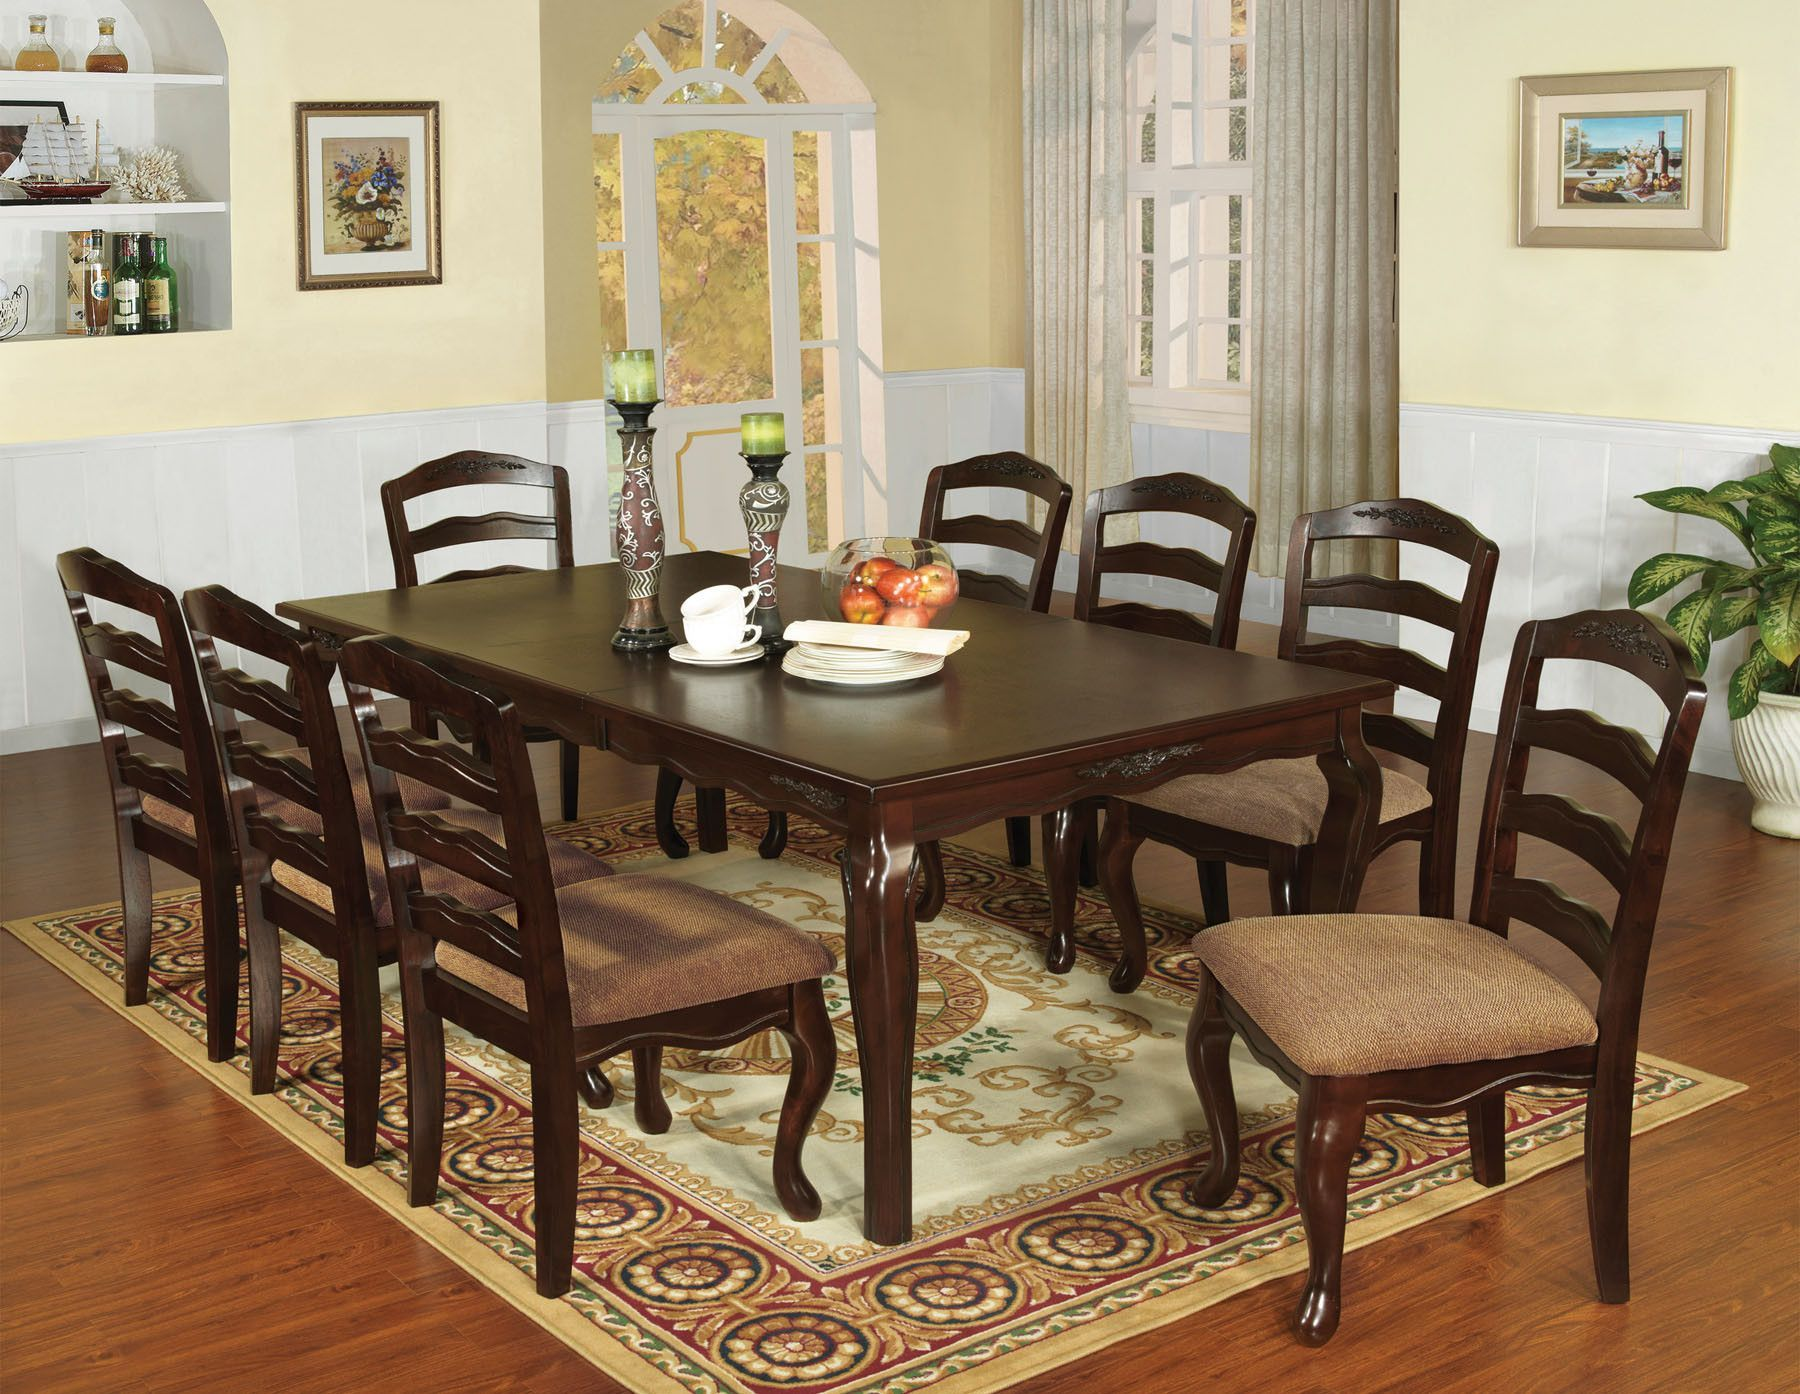 Townsville 9 Pcs Dining Table & Chairs Set Cm3109T78  Wood Impressive 9 Pcs Dining Room Set Design Decoration